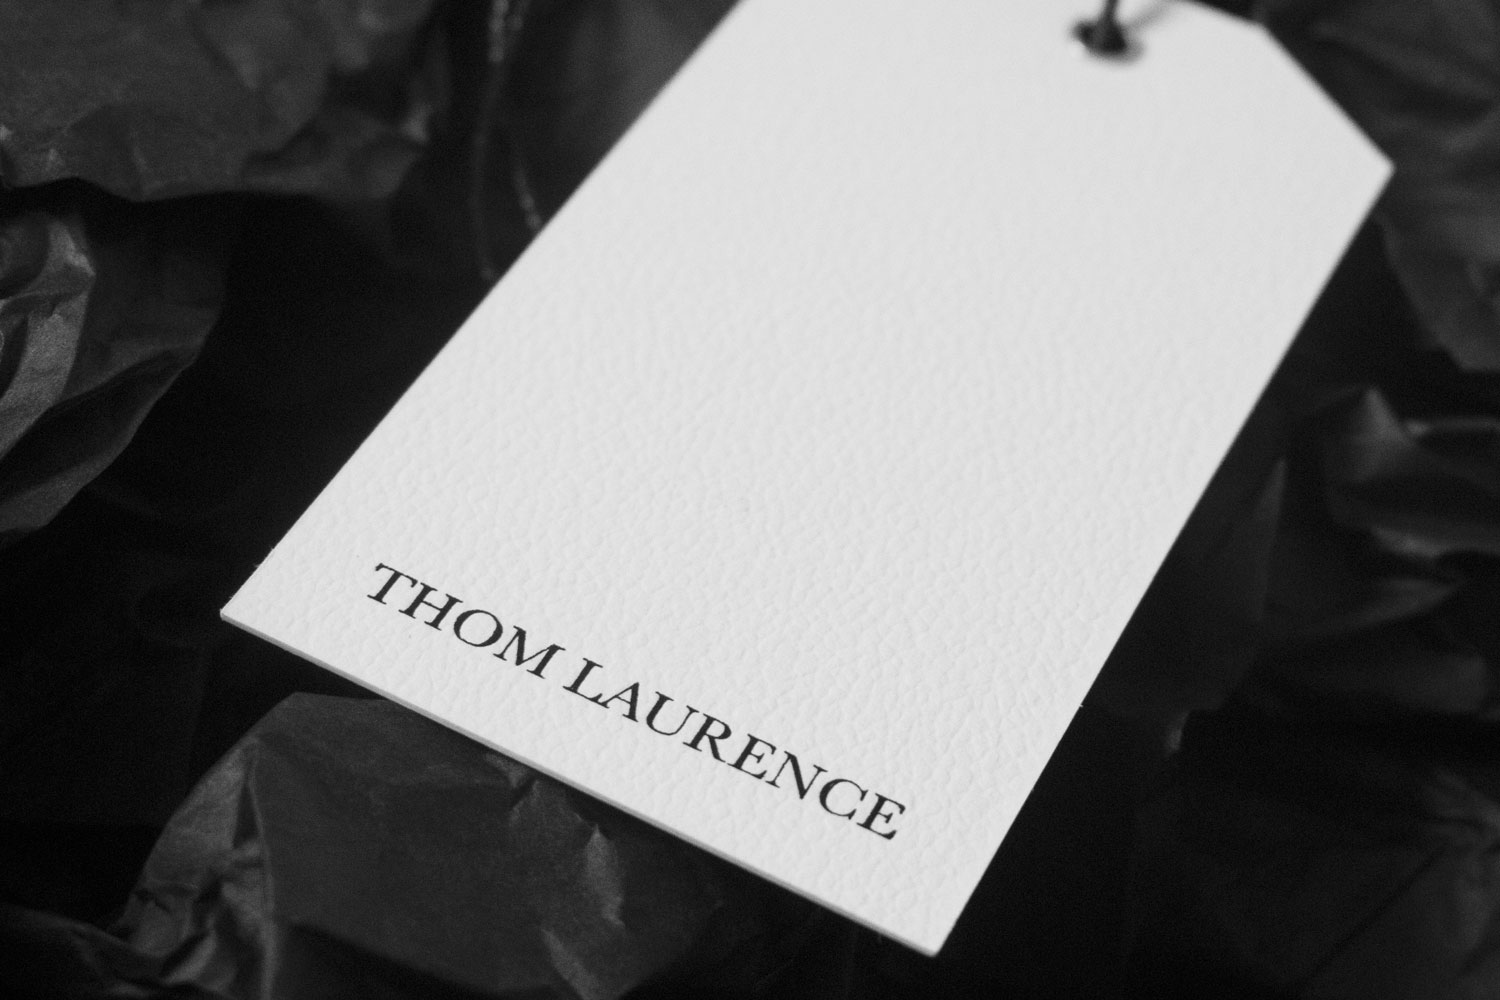 Progress Packaging Thom Laurence Bespoke Luxury Colorplan Embossed Blackfoil Box Manufacture Production Print Tissue Swing Tag